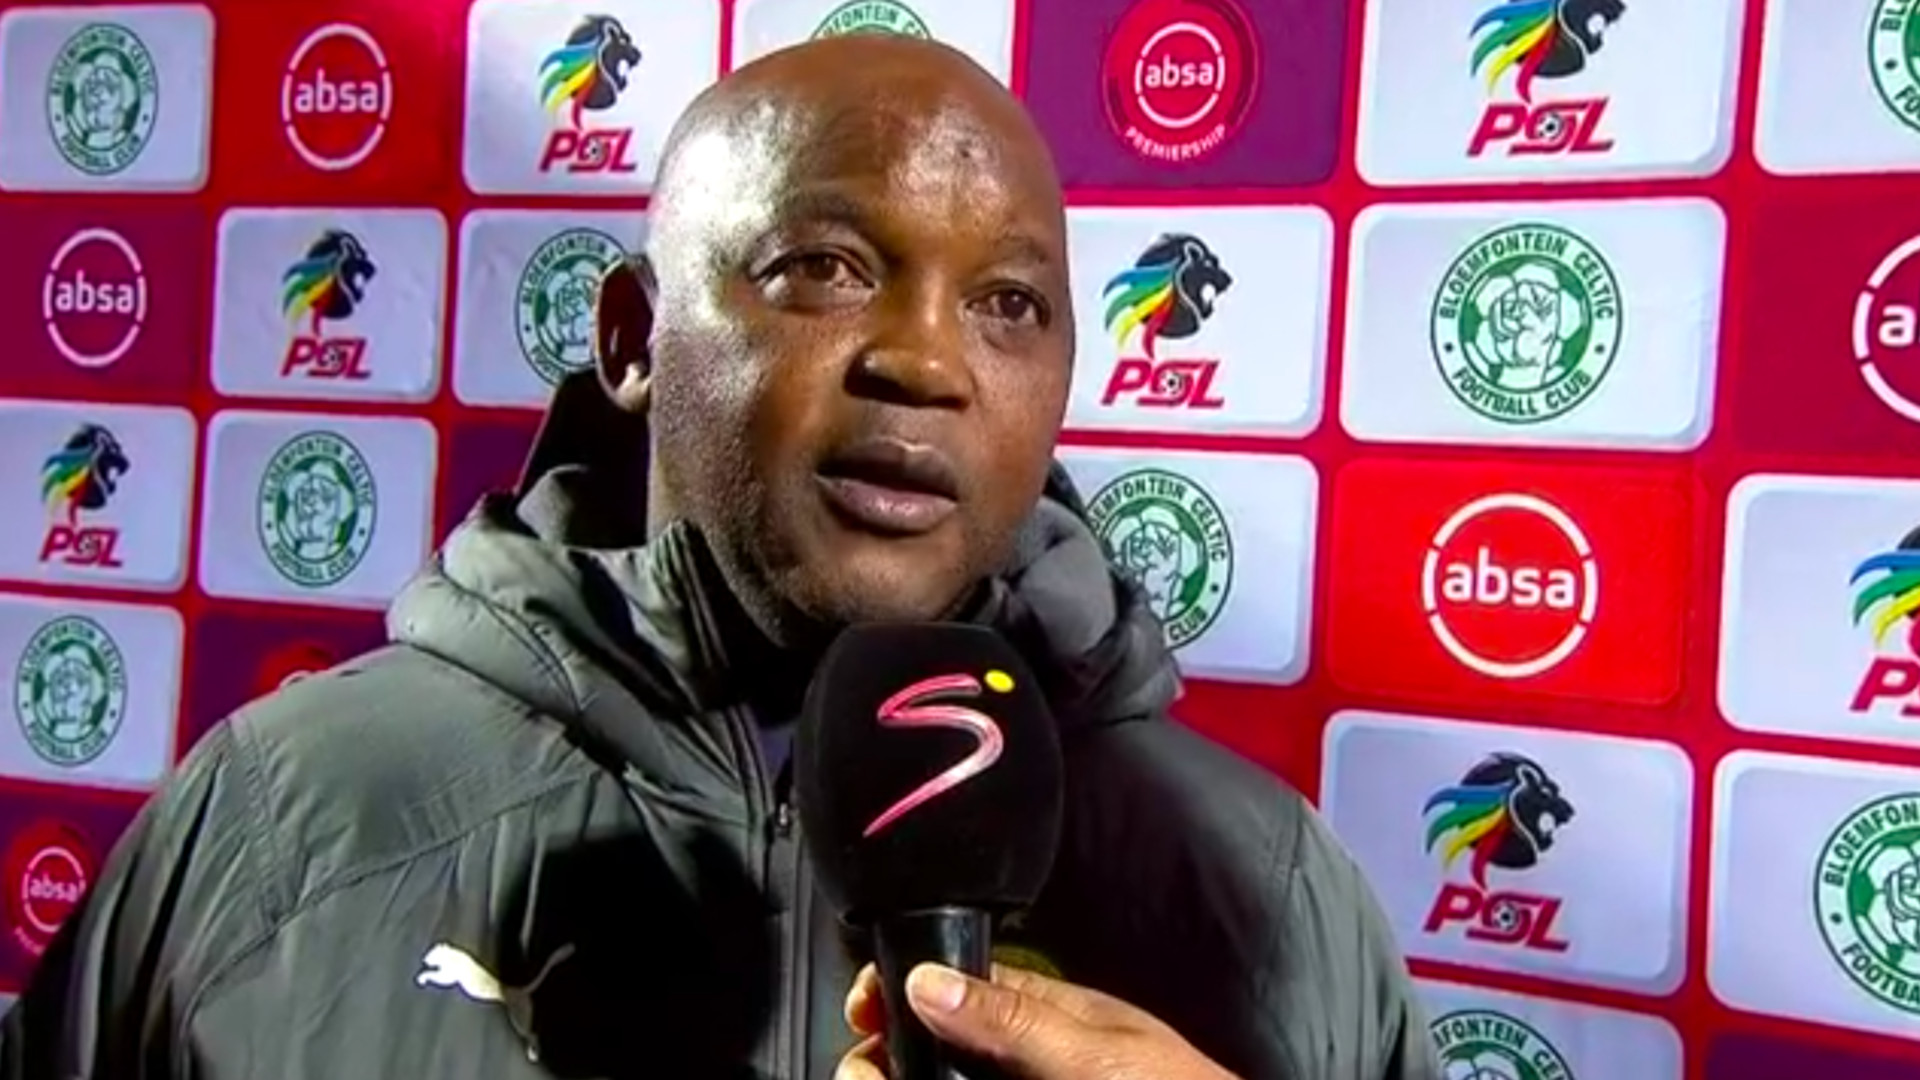 Absa Premiership 2019/20 | Celtic v Sundowns | Pitso Mosimane | Interview